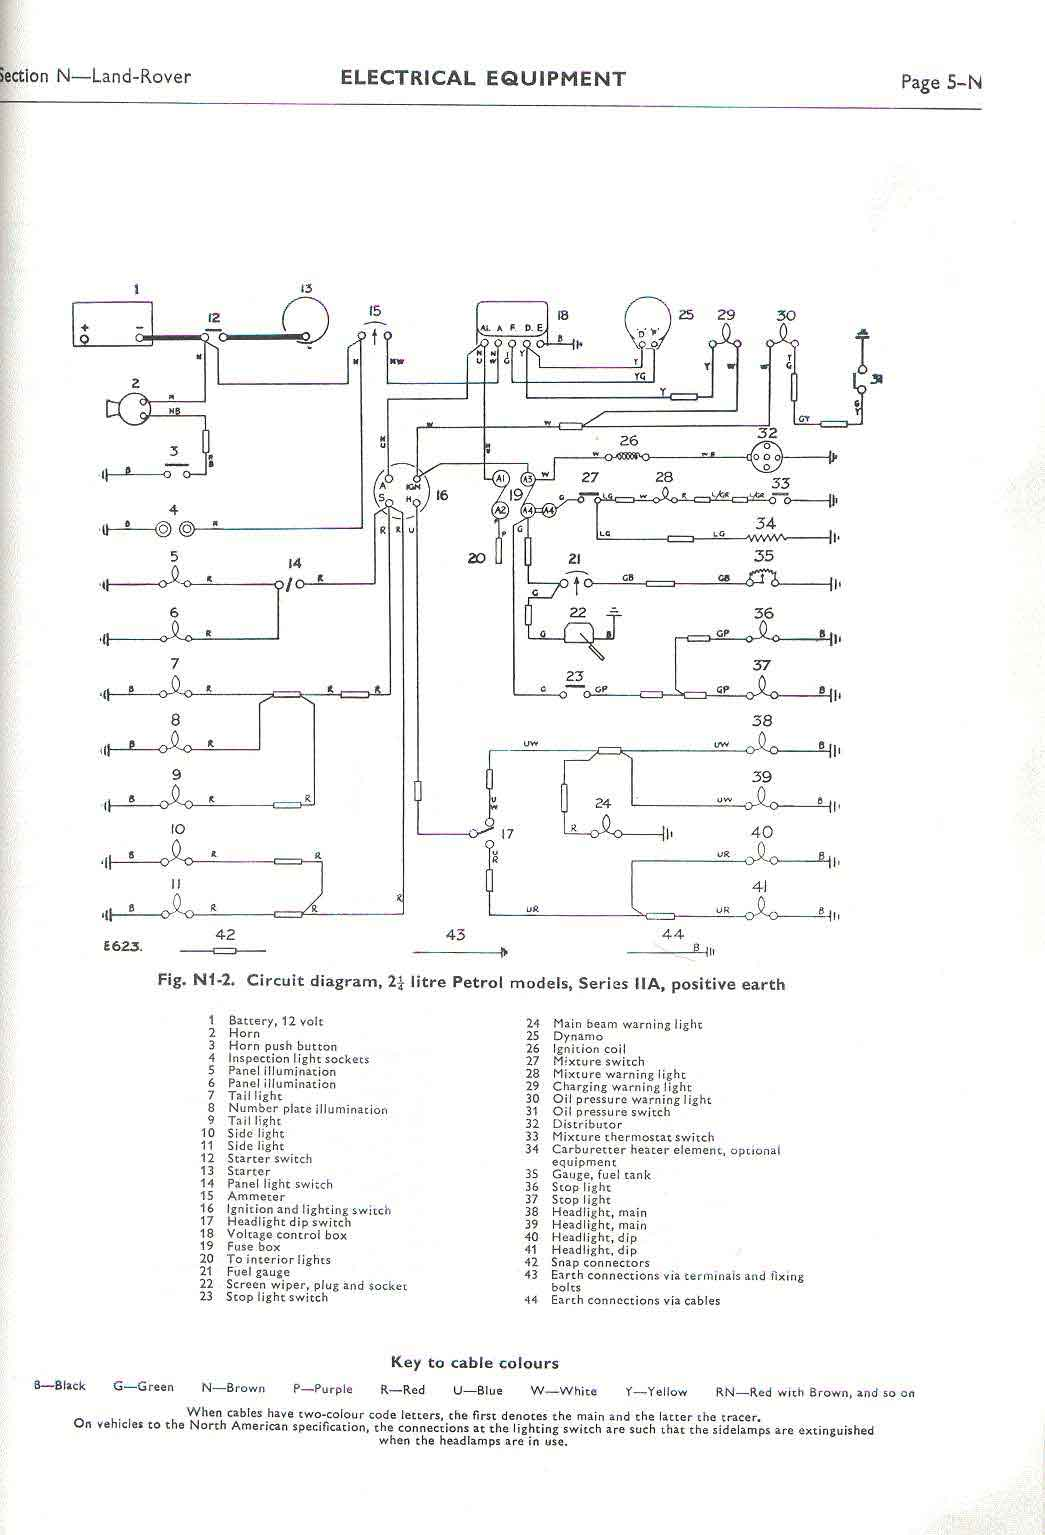 SIIA+VE land rover faq repair & maintenance series electrical land rover series 3 wiring diagram at gsmx.co